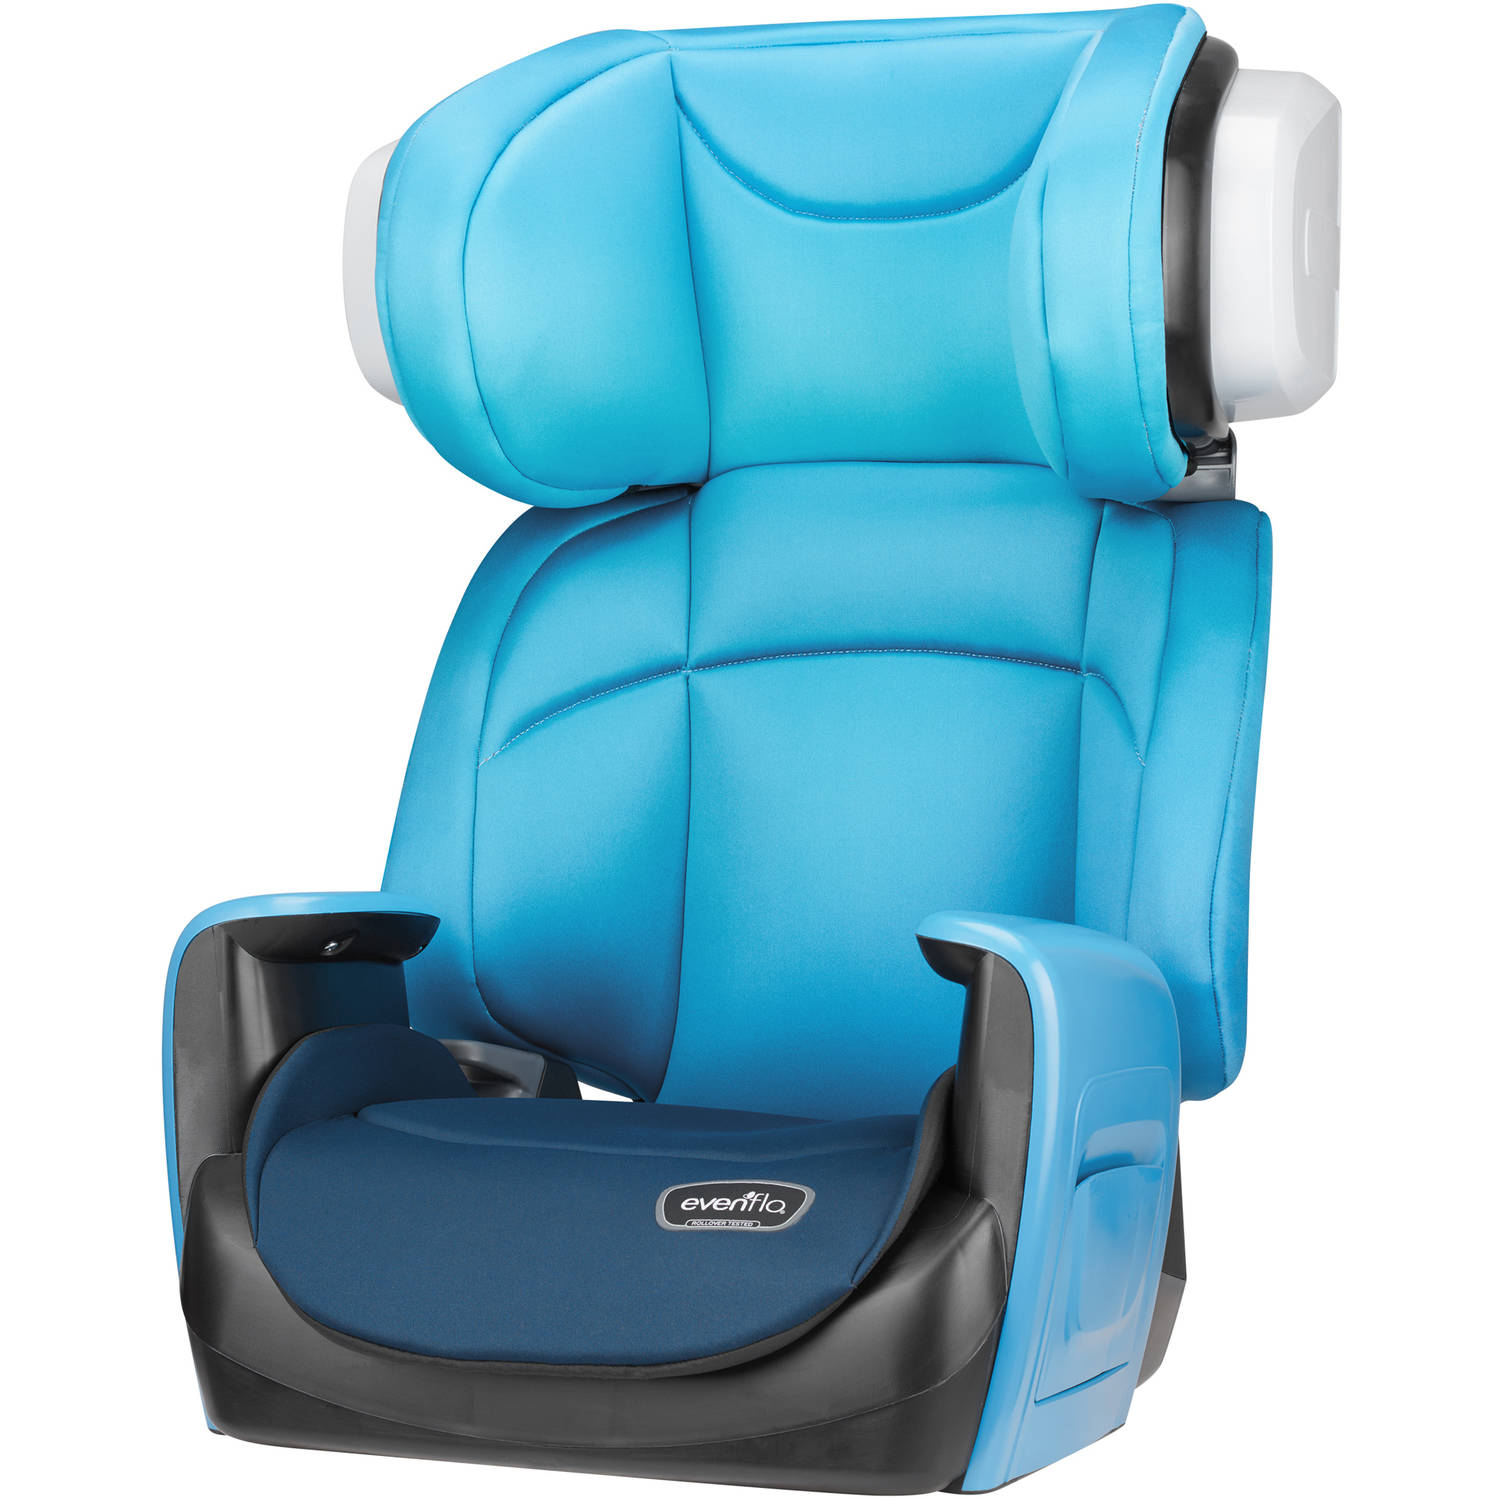 Evenflo Spectrum 2-in-1 High Back Booster Car Seat, Bubbly Blue